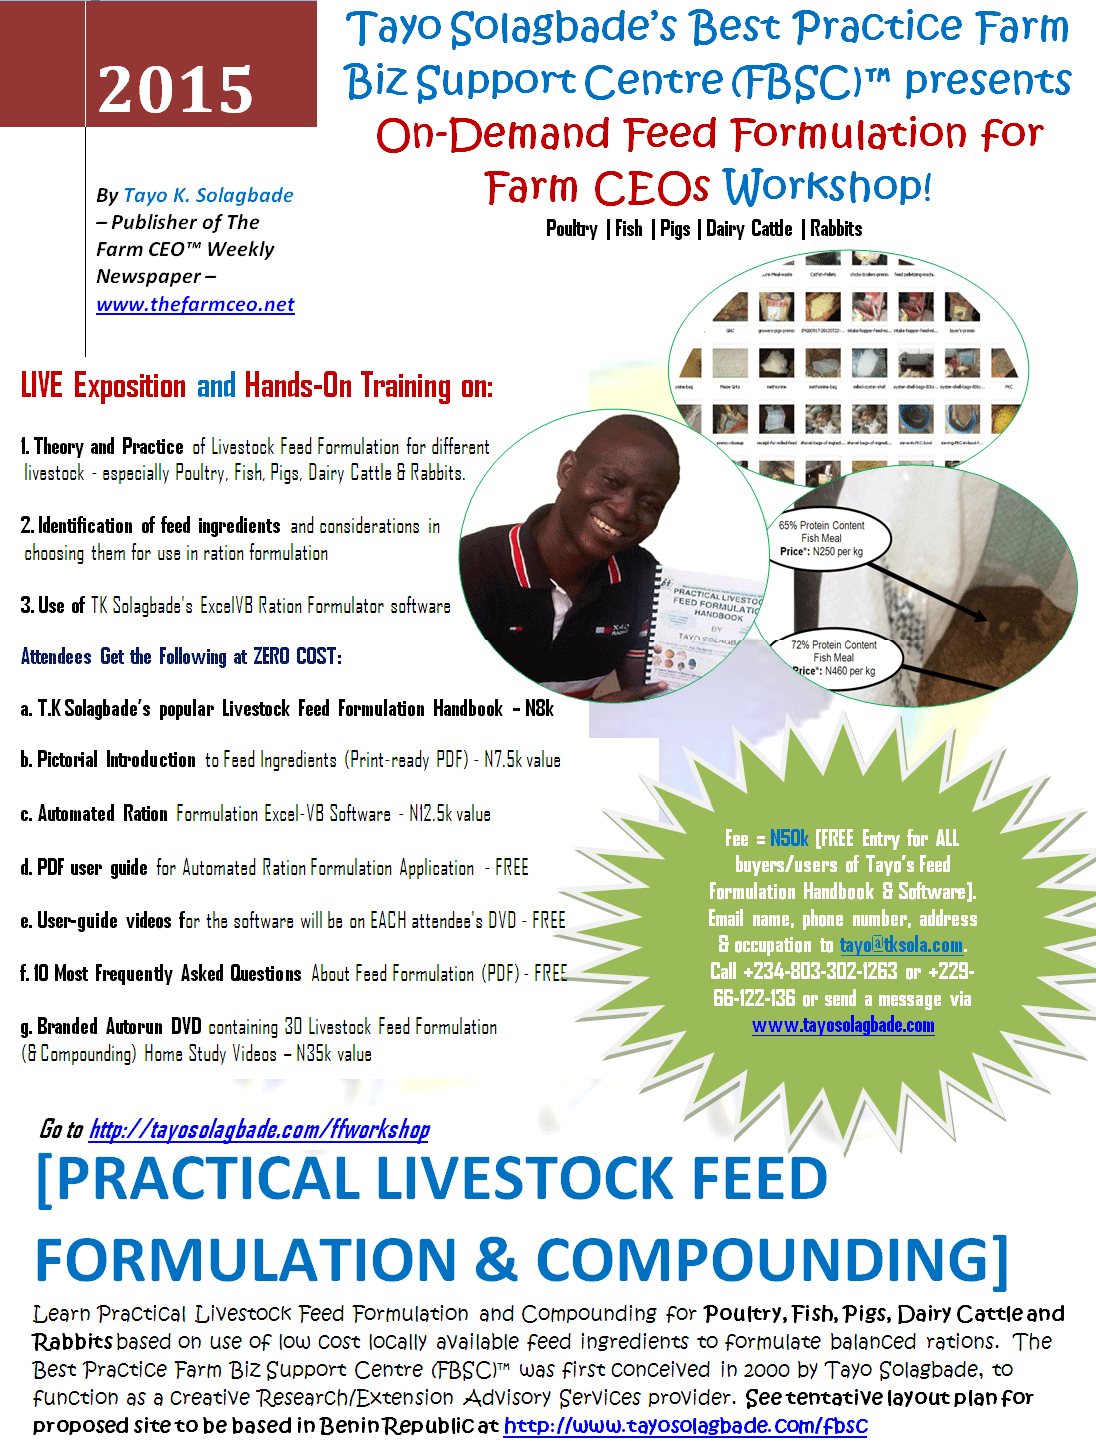 One page flyer for On-Demand Feed Formulation for Farm CEOs Workshop